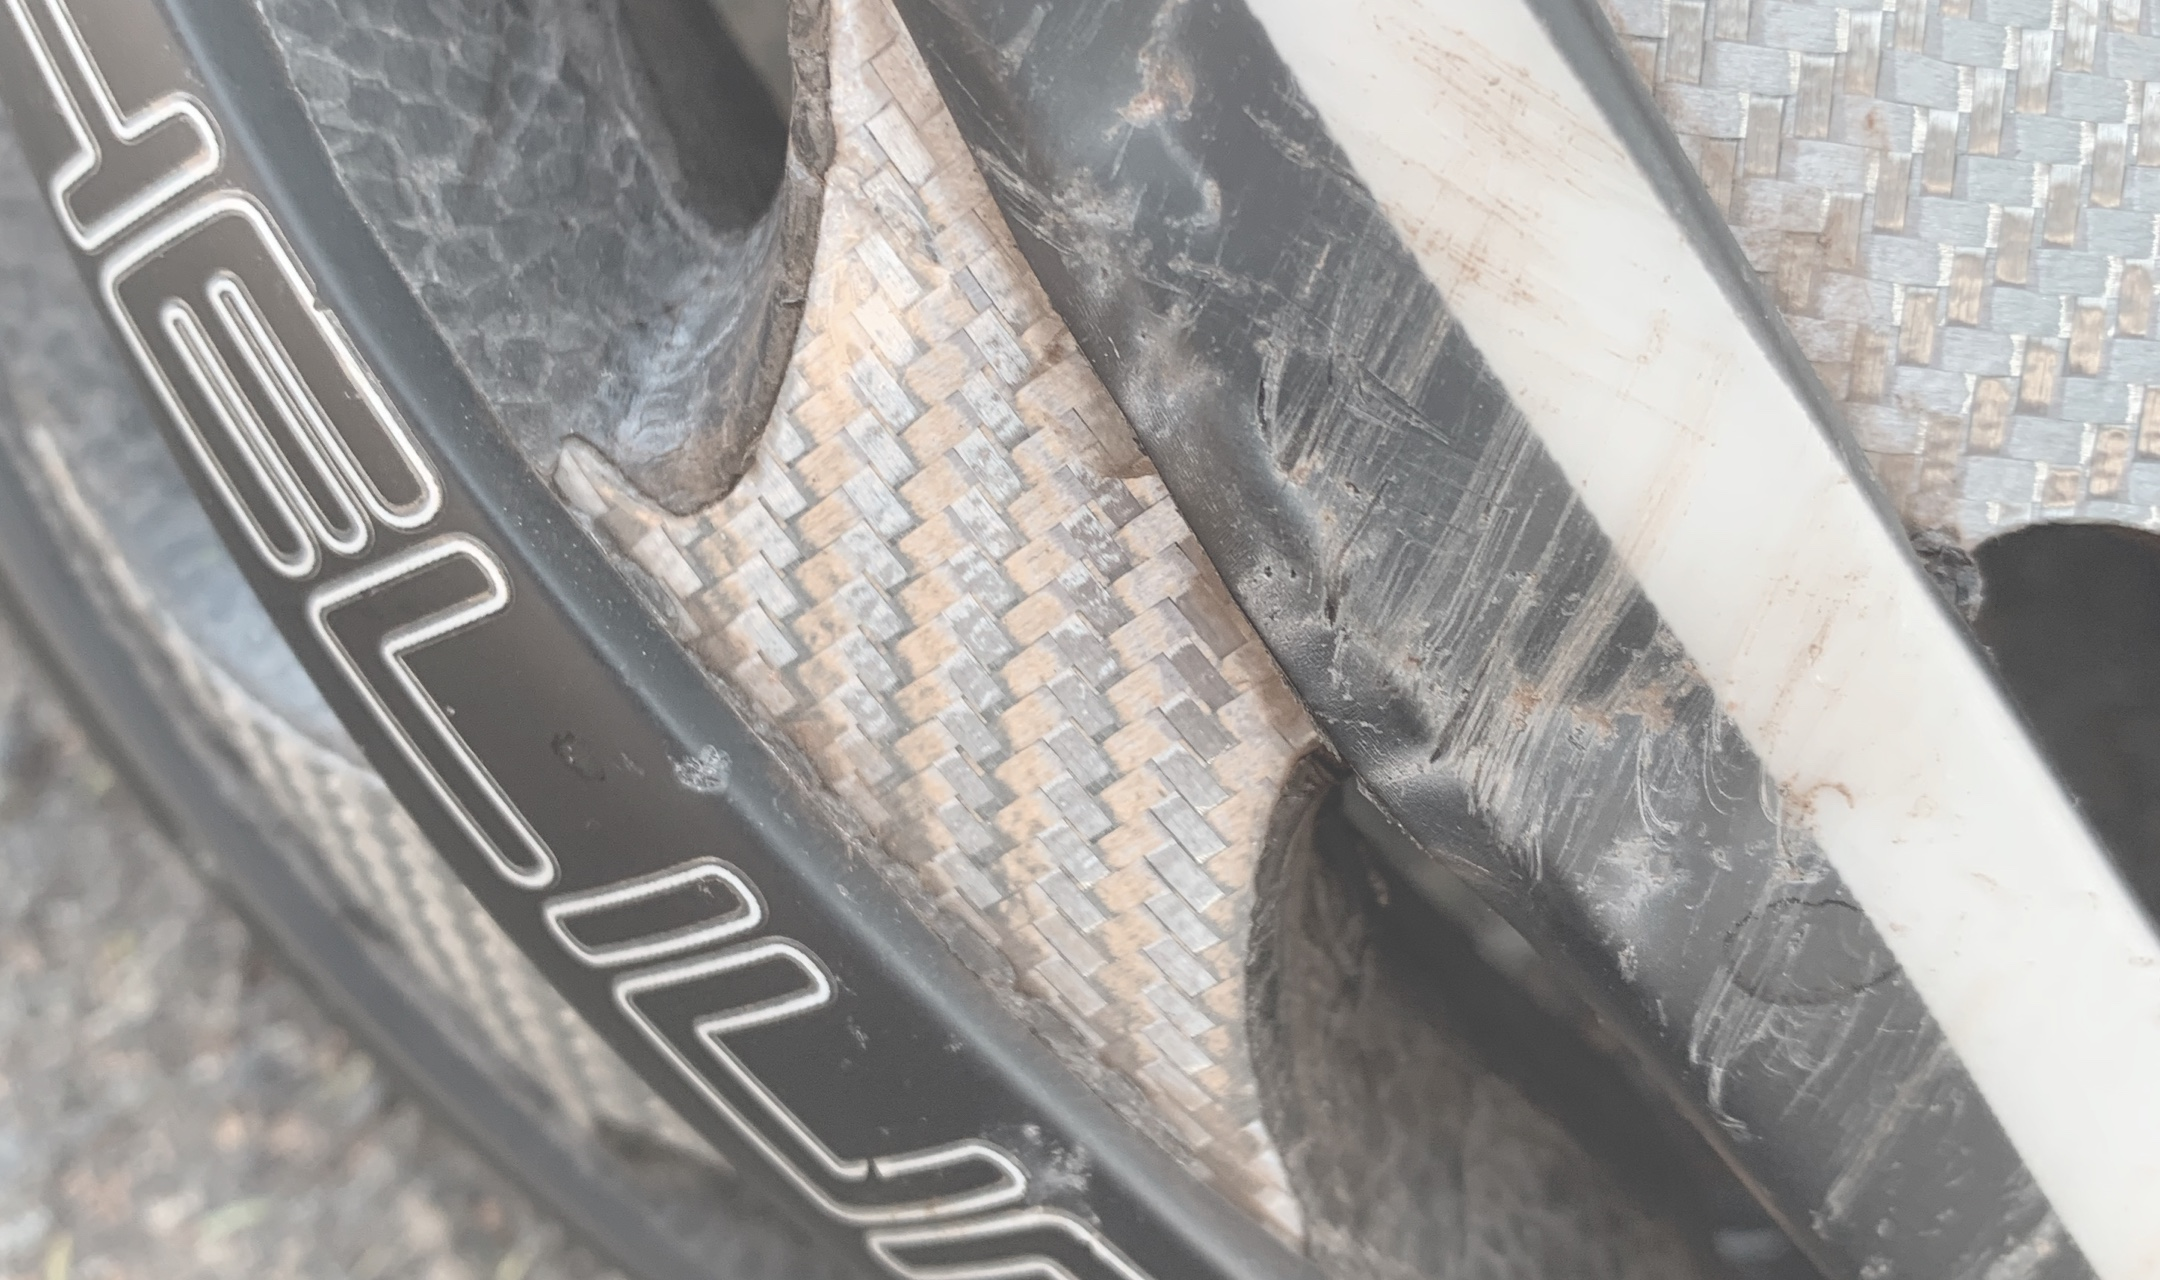 External shell damage is a sure reason to replace your helmet.